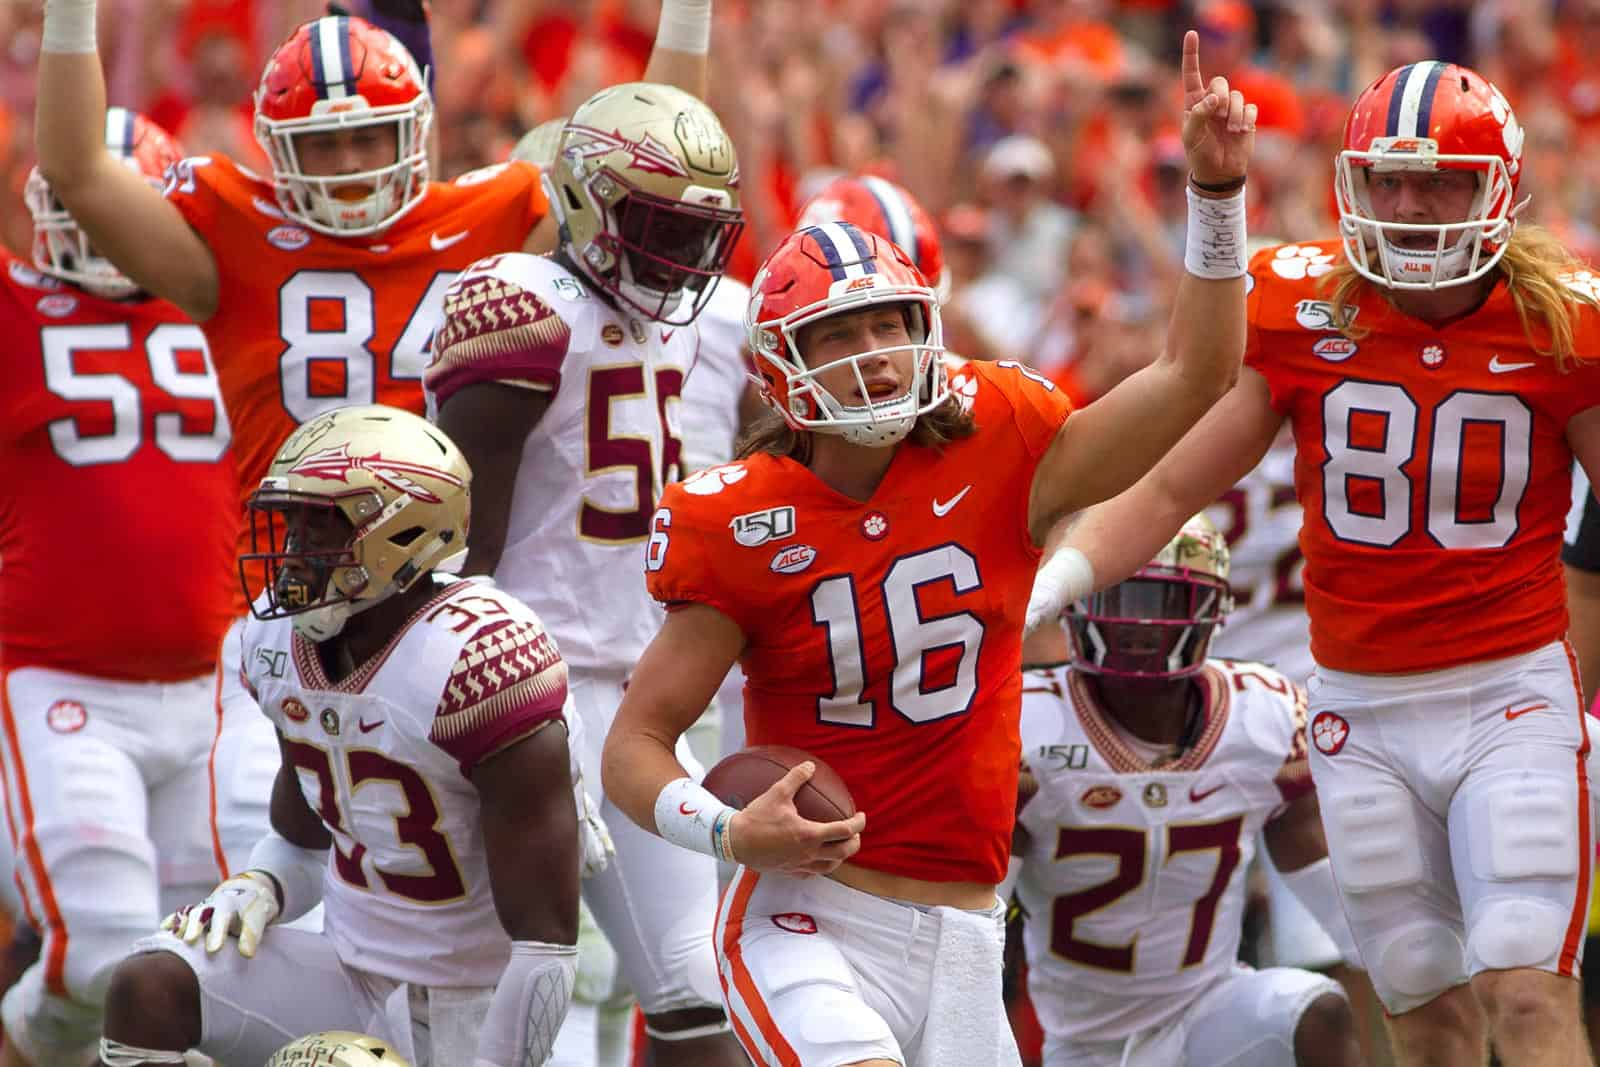 Florida State-Clemson game postponed amid coronavirus concerns